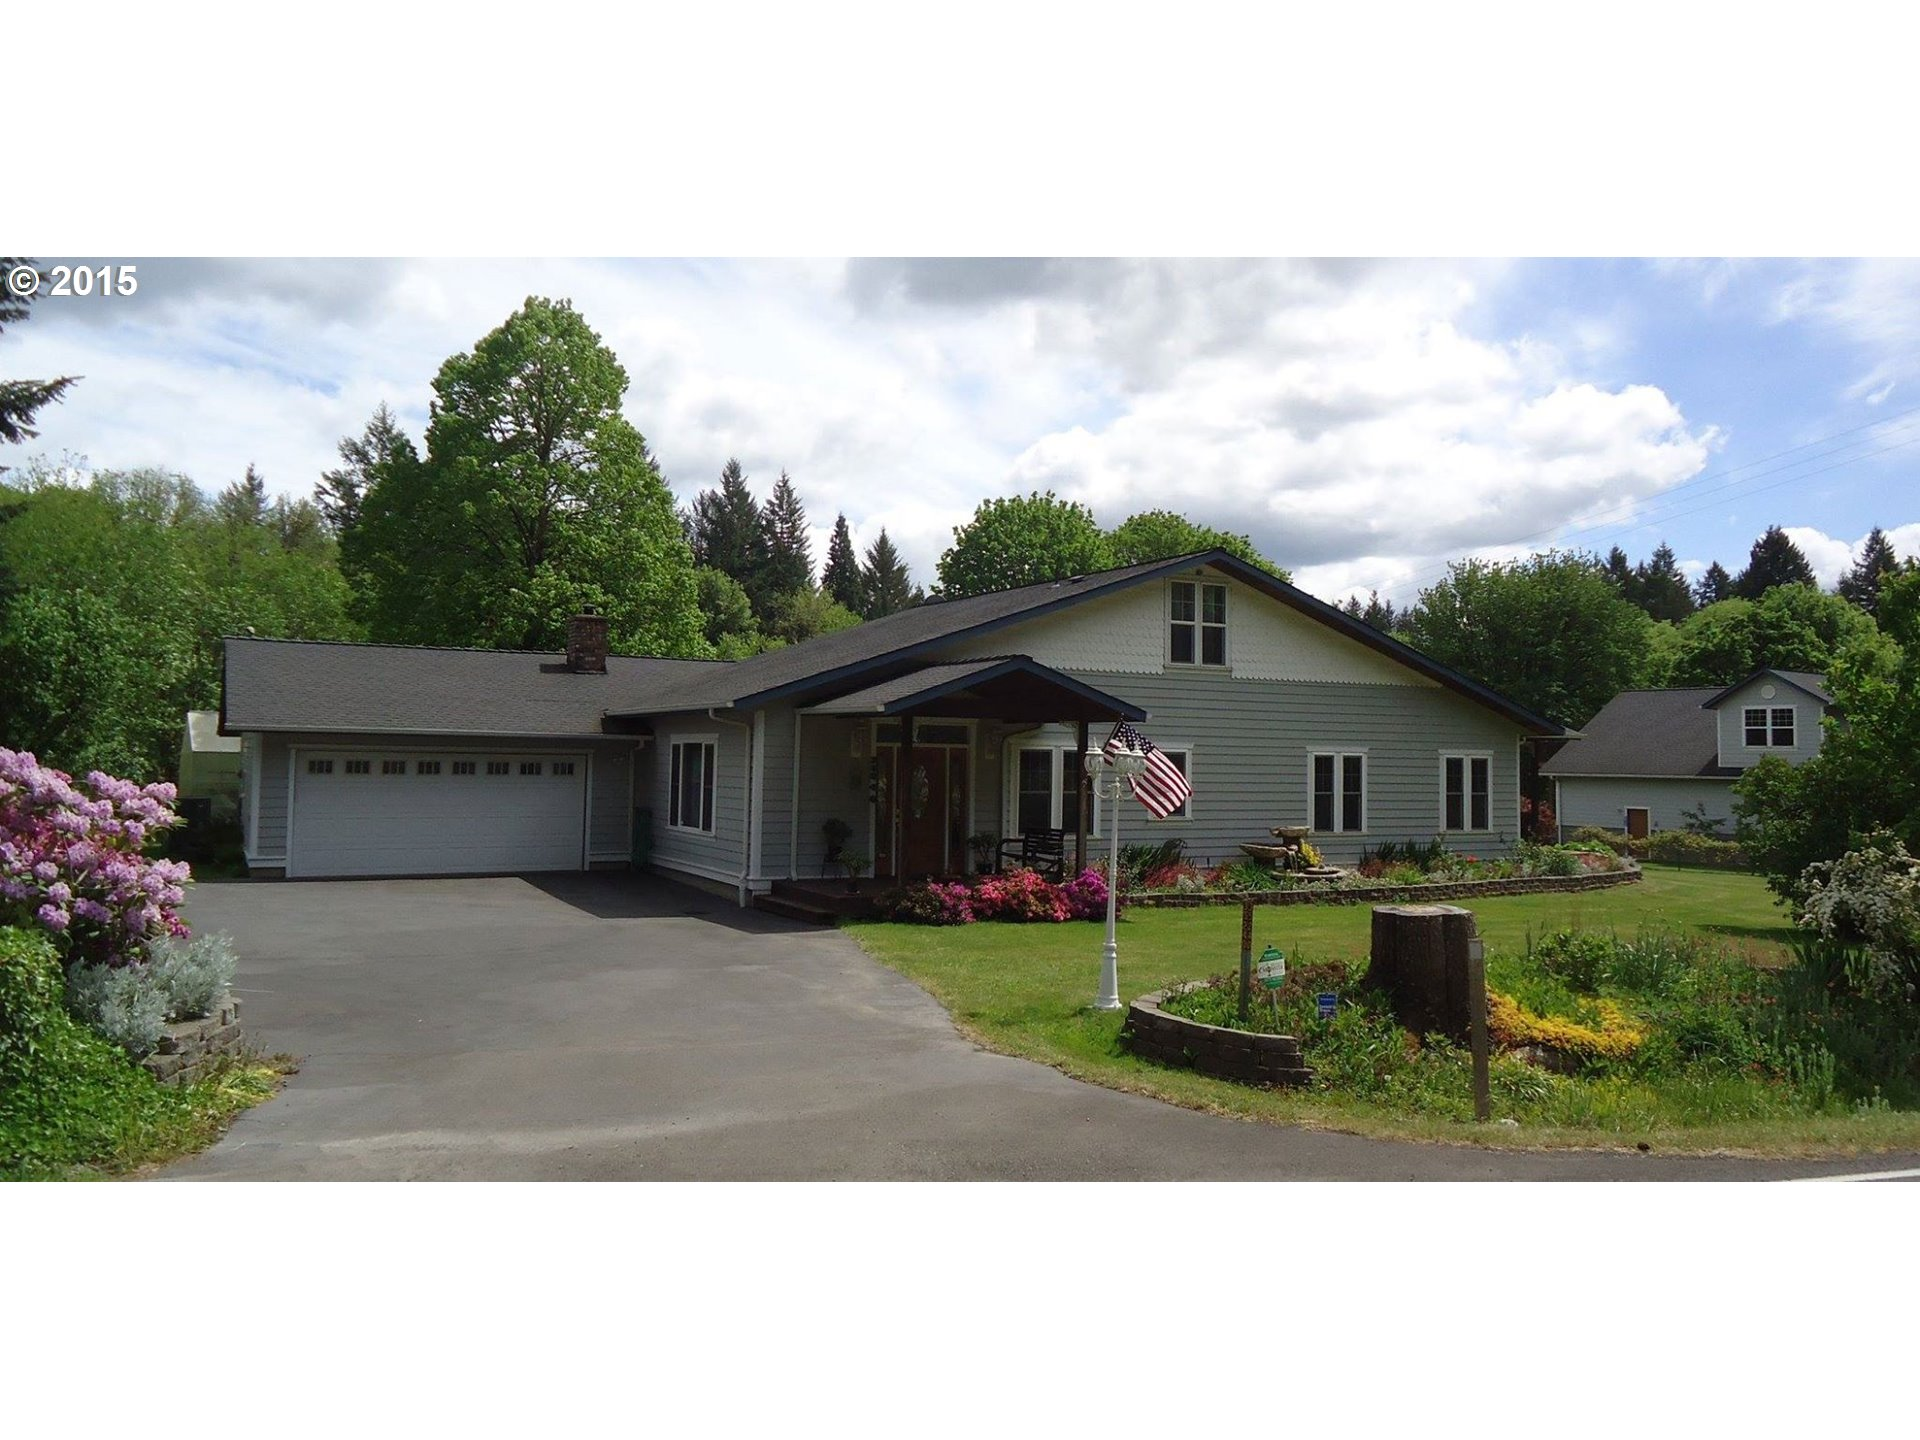 35240 Mckenzie View Dr, Springfield, OR